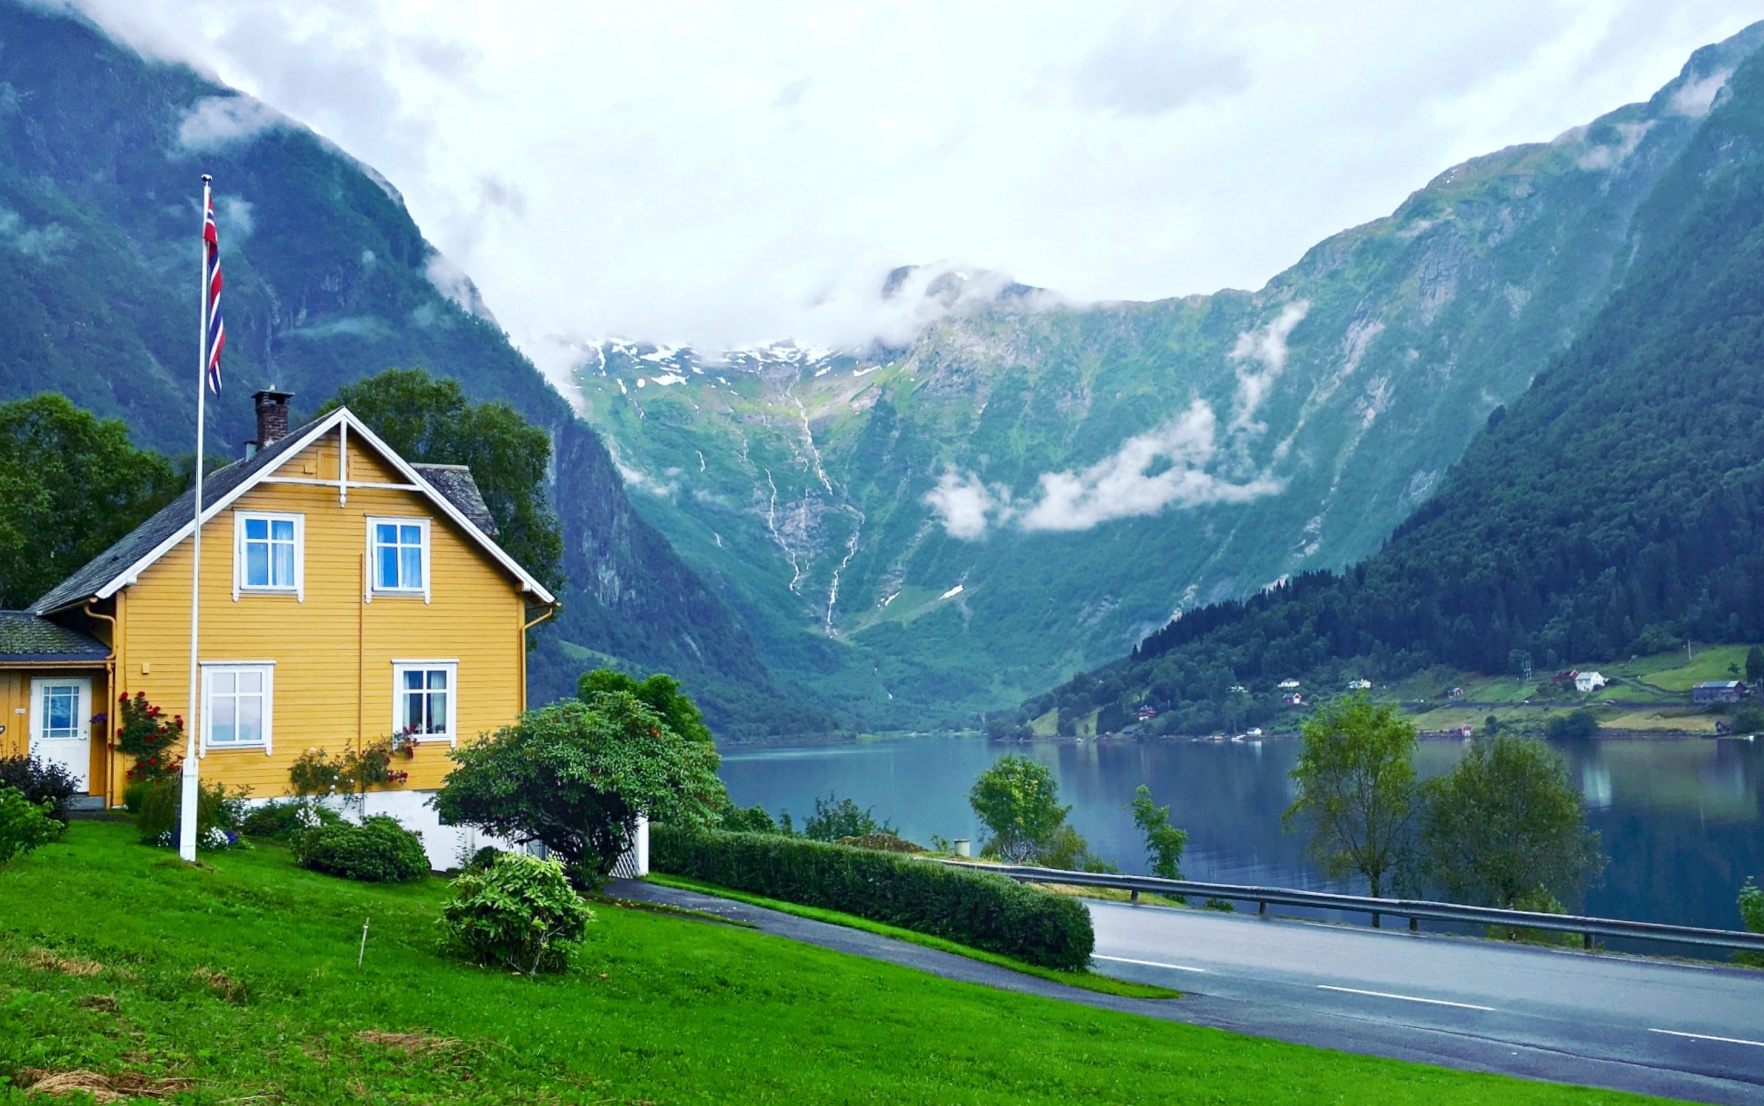 Norway House near the lake shore